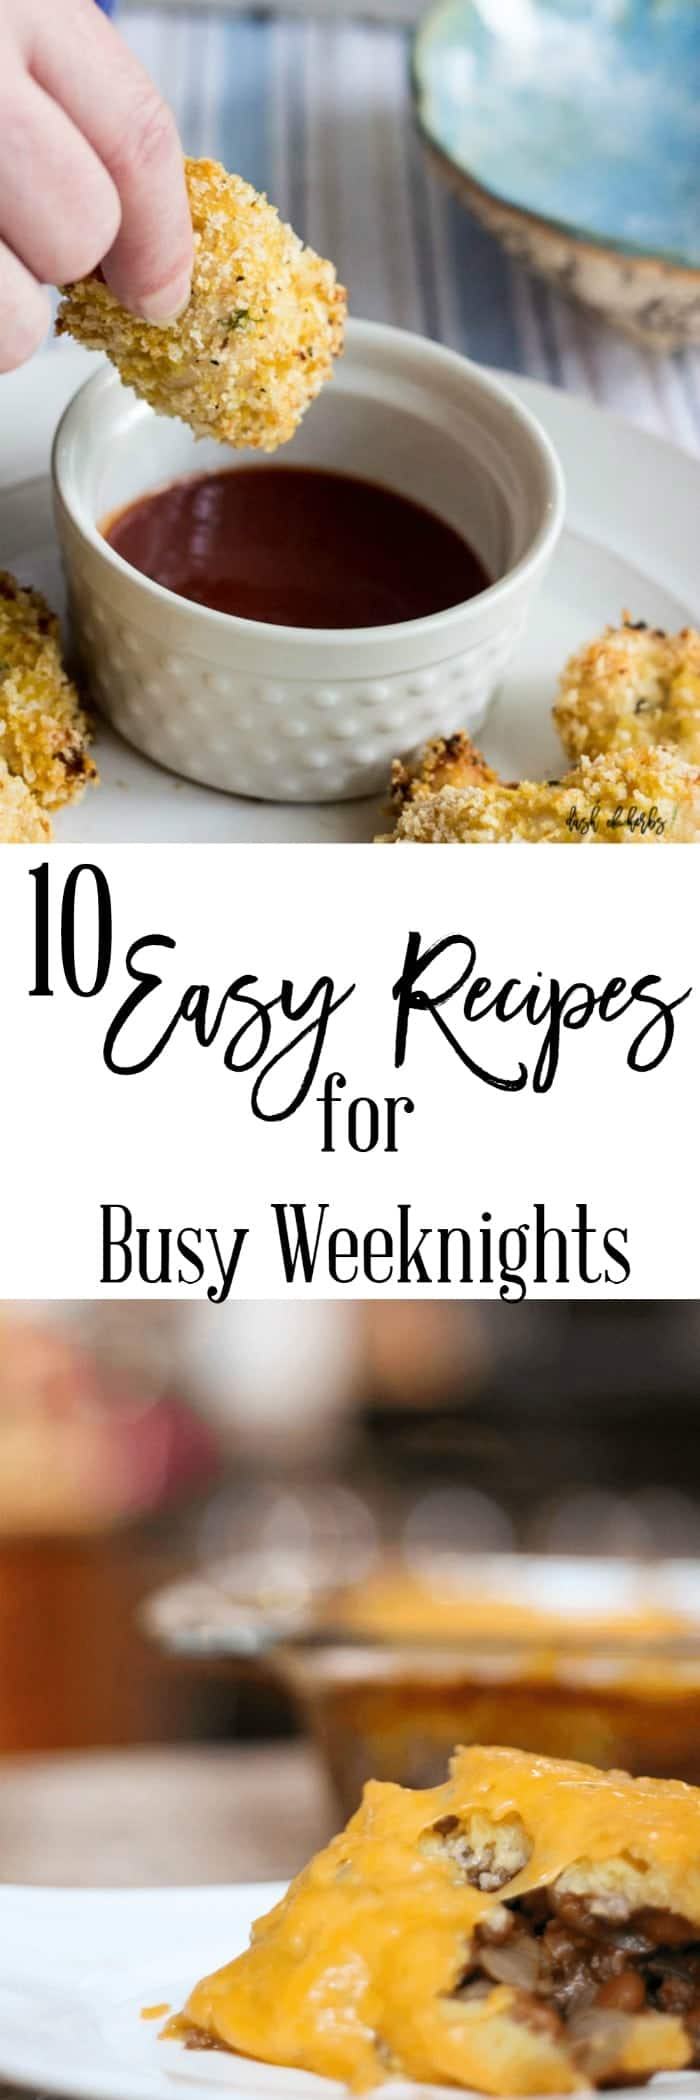 10 Easy Recipes for Busy Weeknights